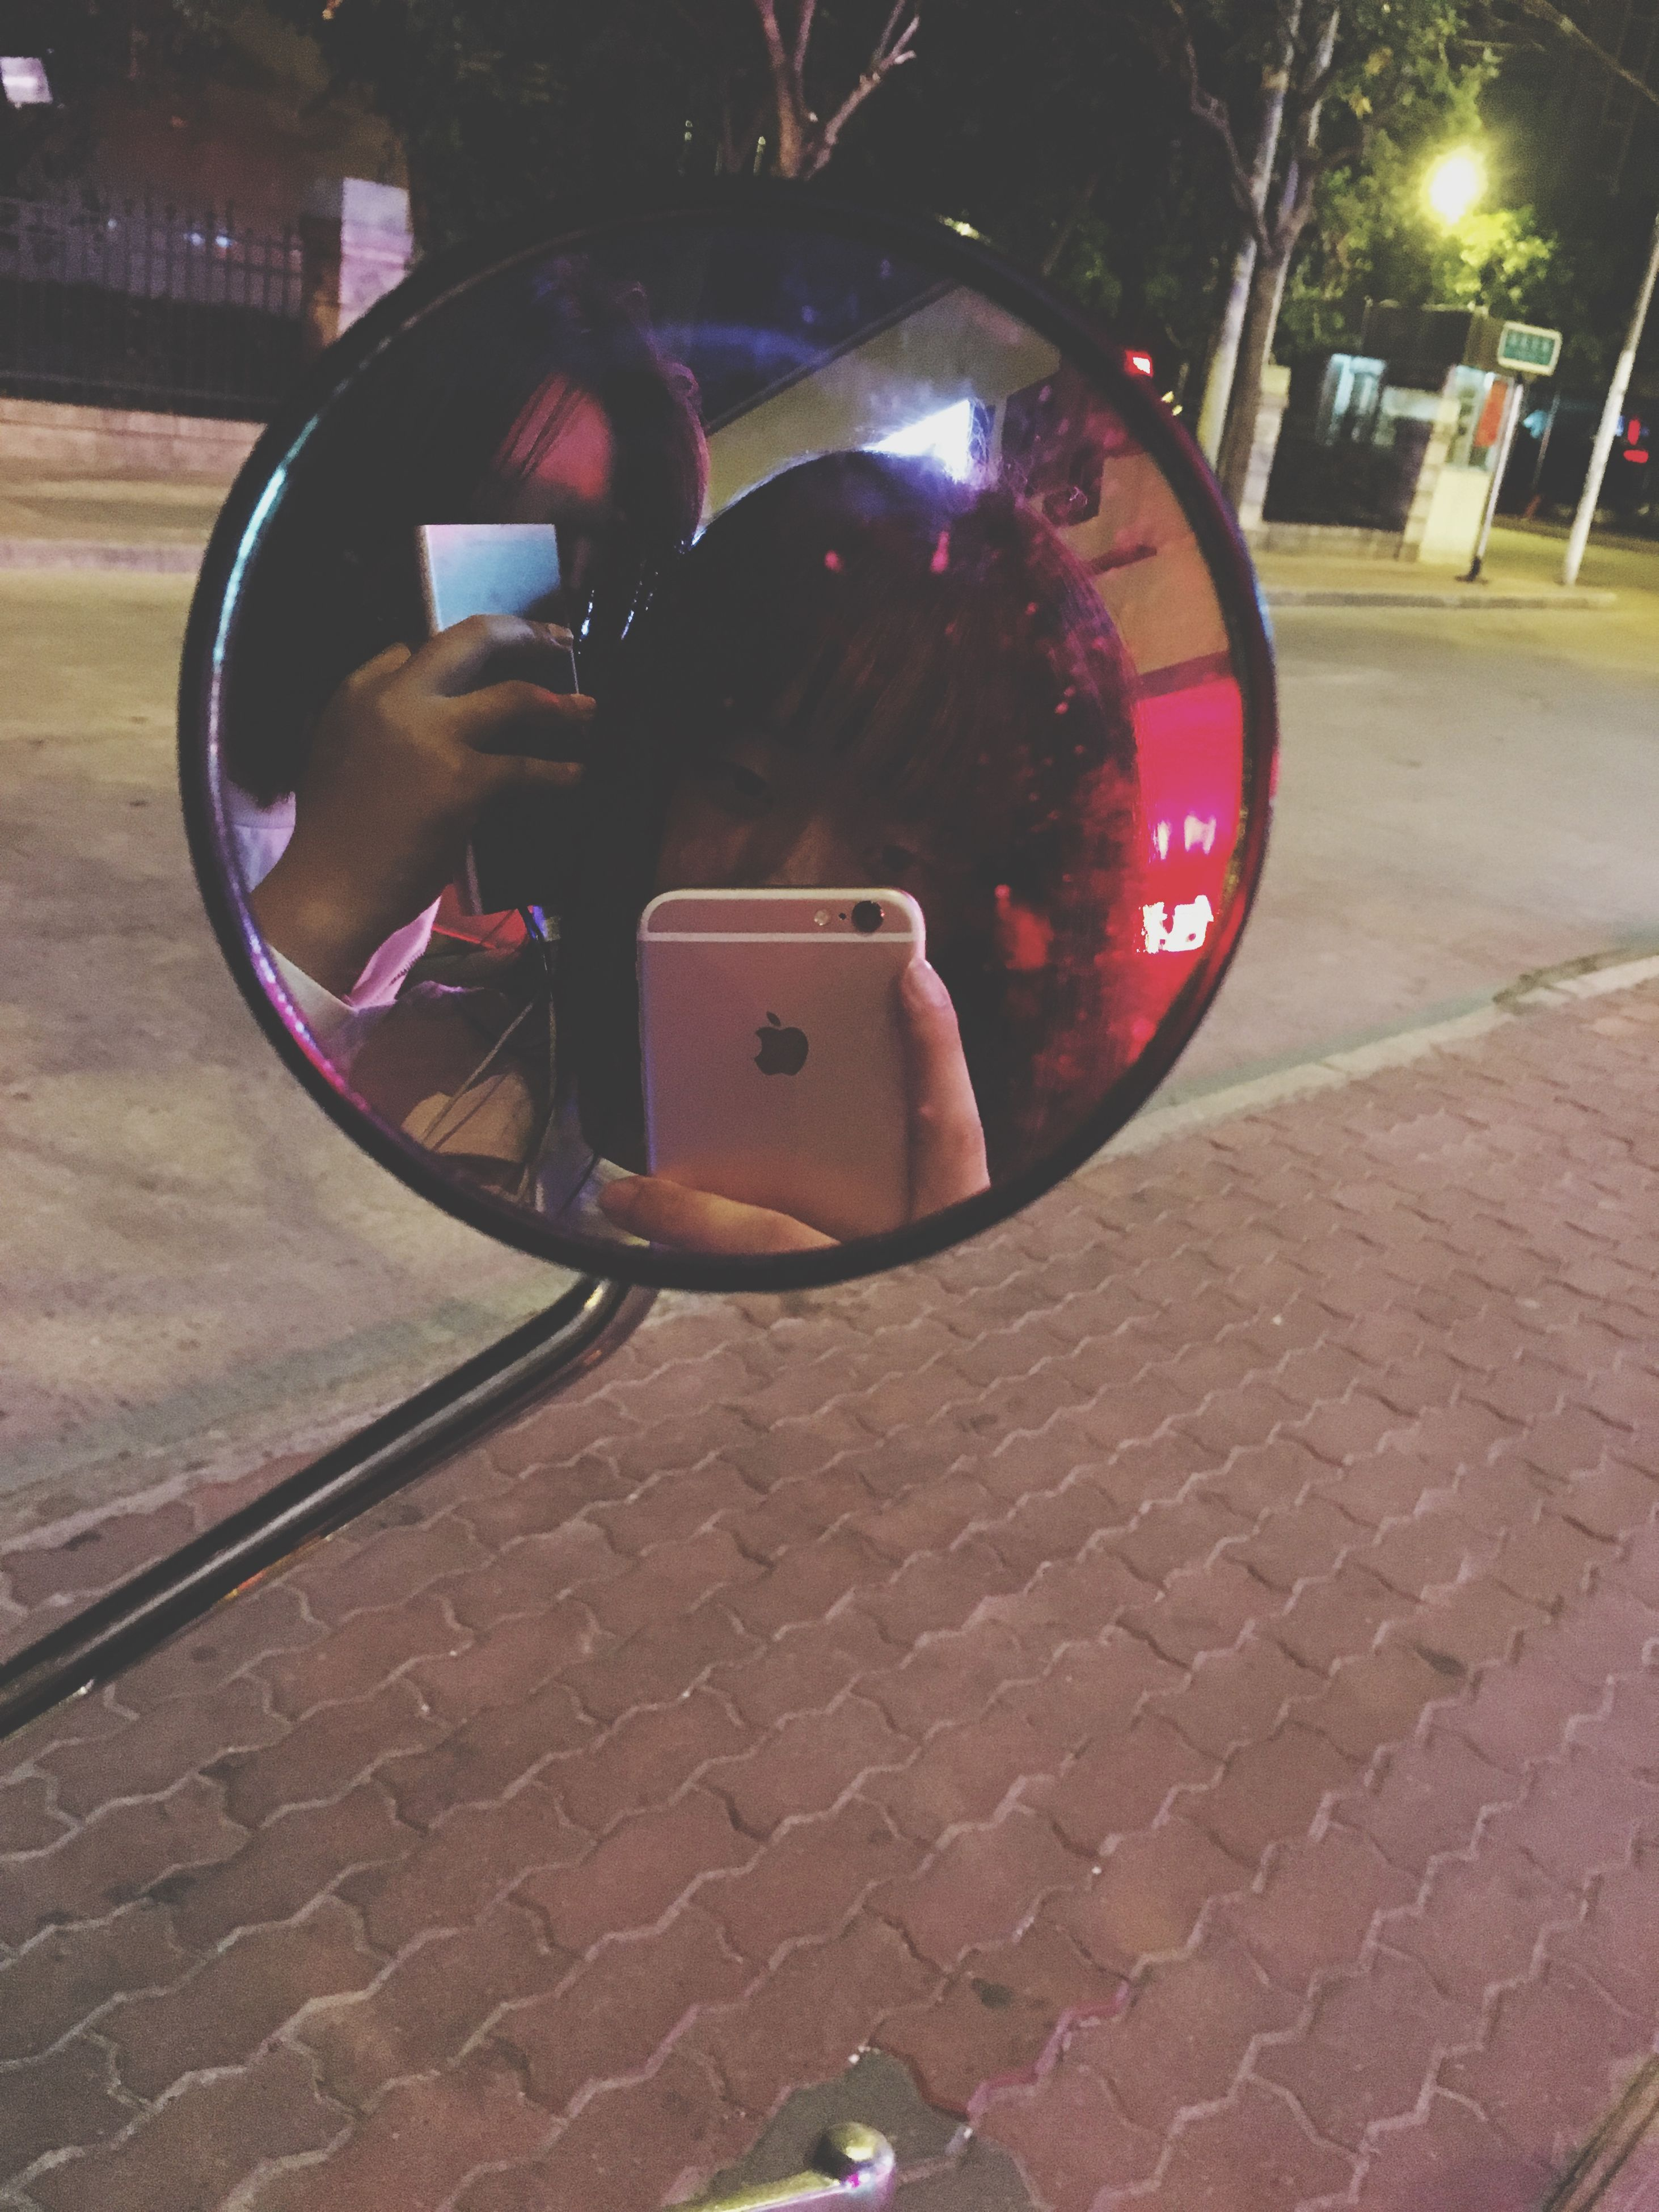 illuminated, night, transportation, land vehicle, street, red, car, lighting equipment, technology, close-up, mode of transport, no people, old-fashioned, high angle view, outdoors, retro styled, communication, road, still life